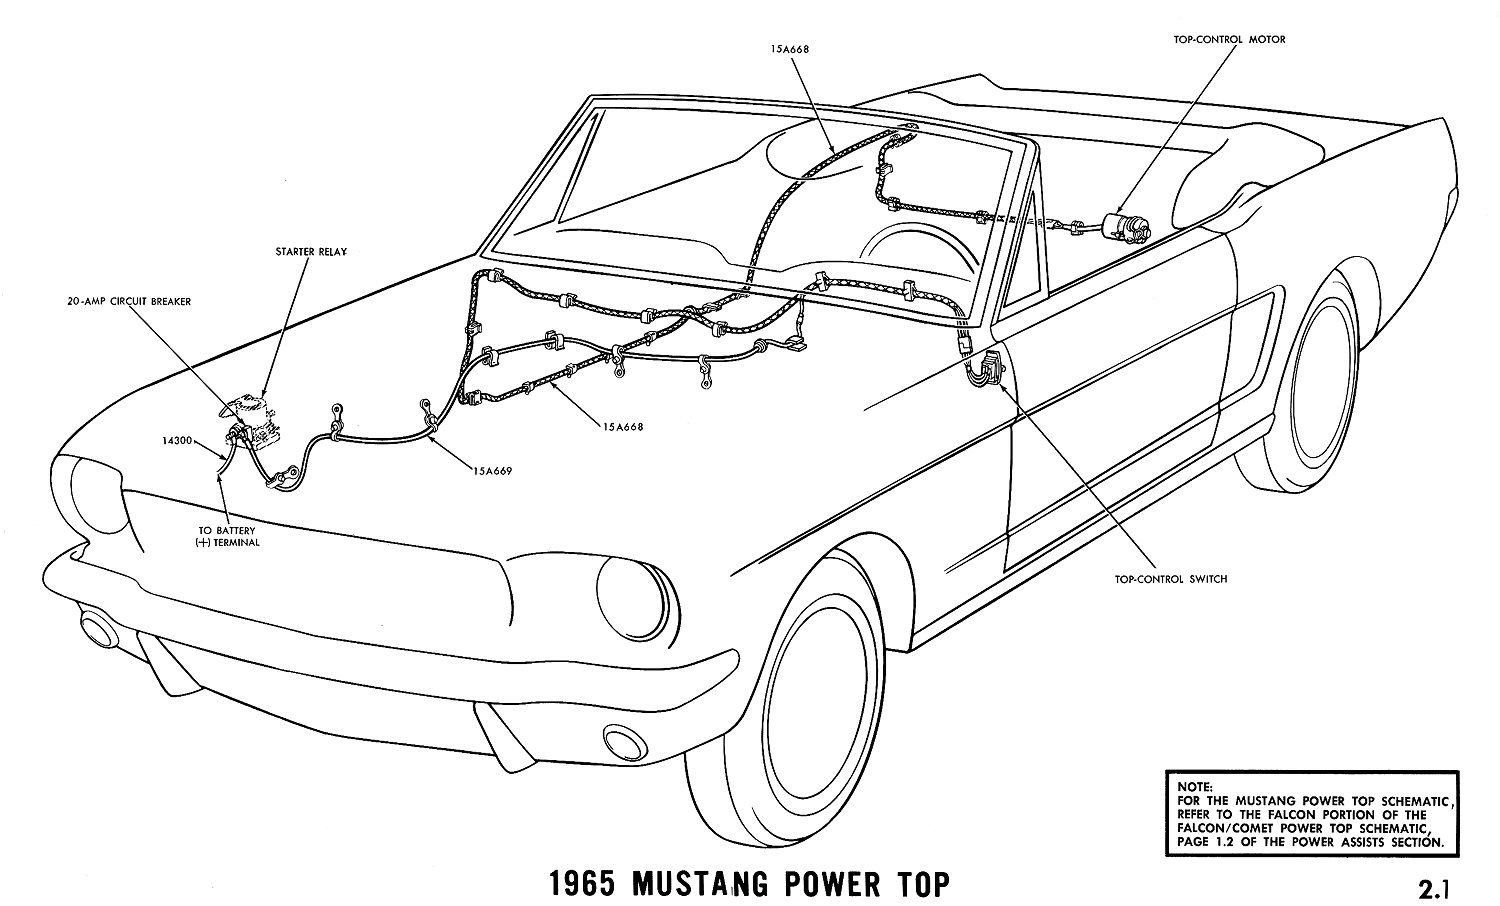 1965j 1965 mustang wiring diagrams average joe restoration 1965 mustang engine wiring harness at virtualis.co